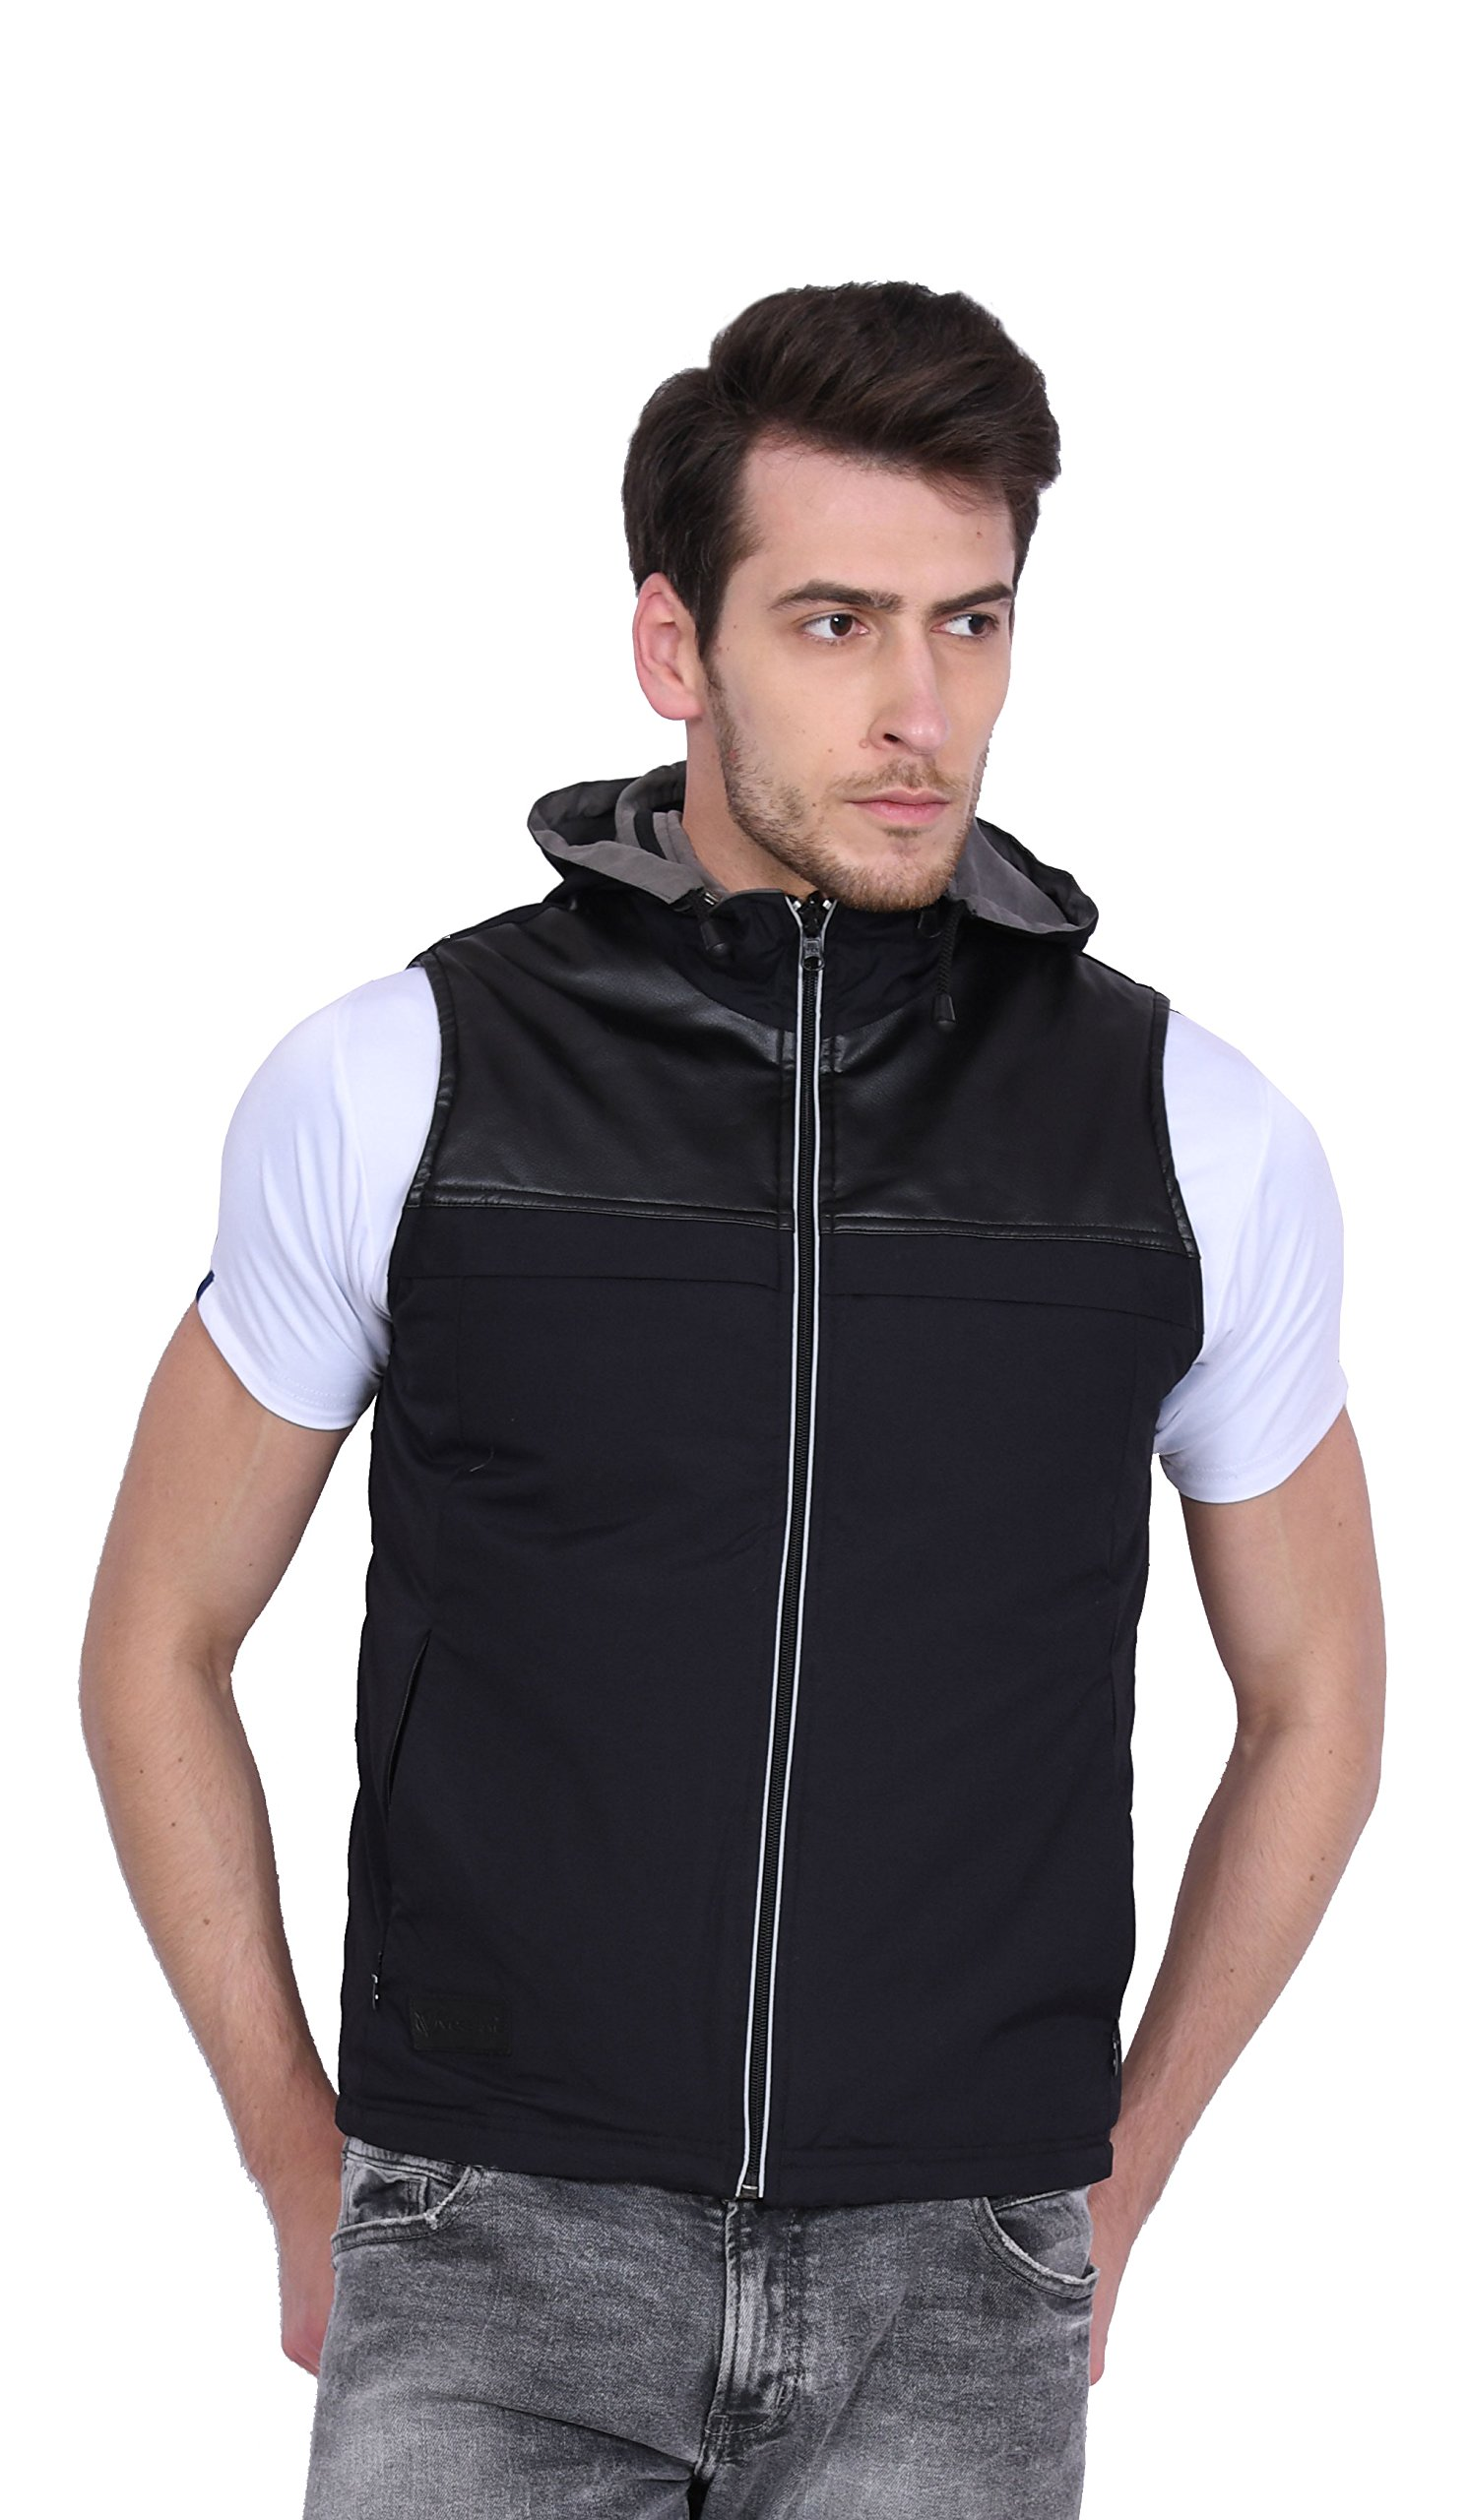 Versatyl- Reversible Sleeveless Travel Jacket-Vest for Men and Women with 11 Hidden Pockets & RFID Protection (Black, XXXL)